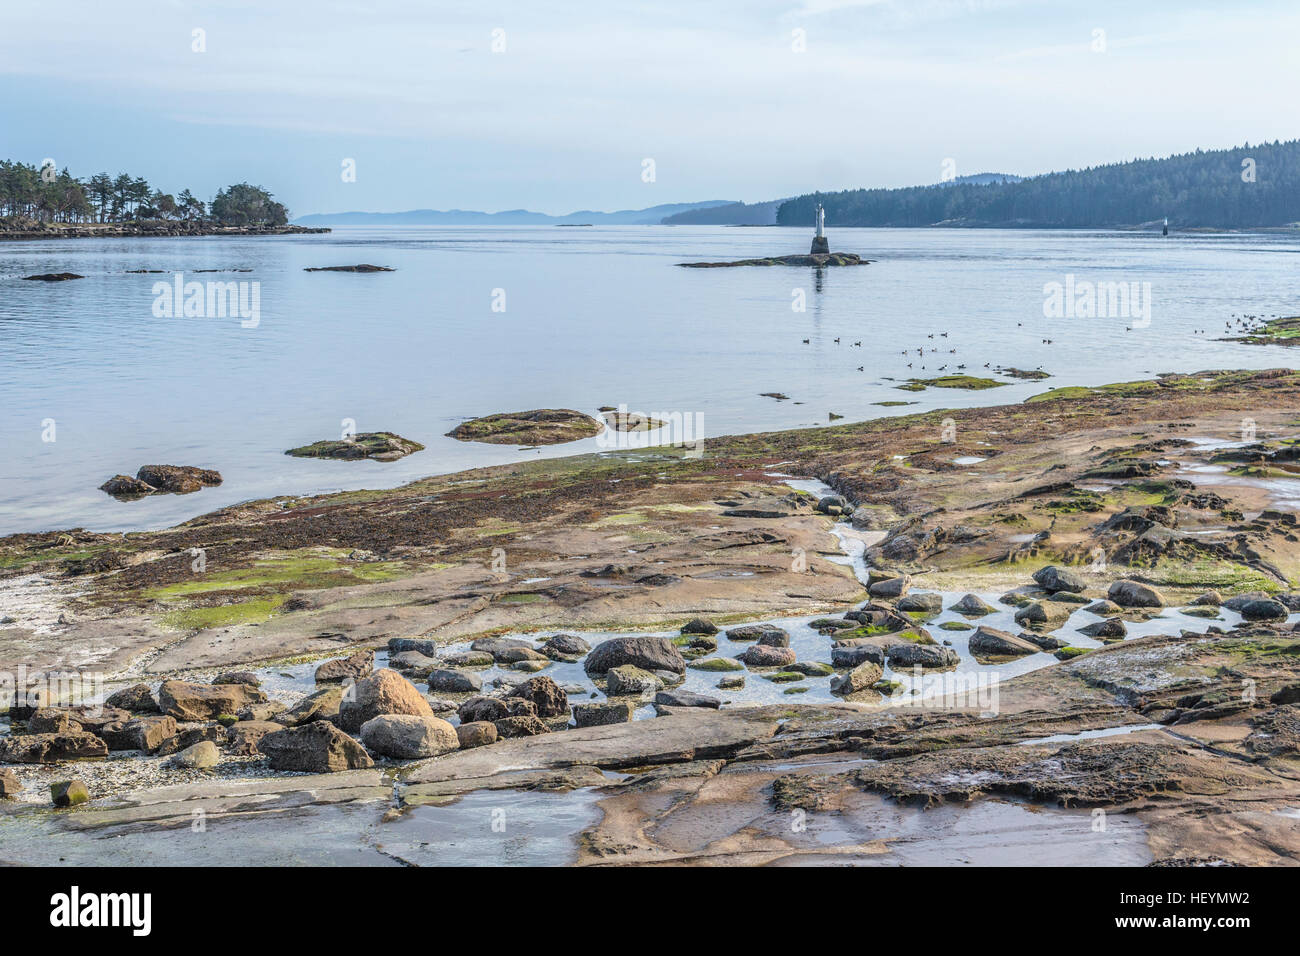 A sunny winter day at a rocky beach on Gabriola Island, in British Columbia's Gulf Islands. - Stock Image